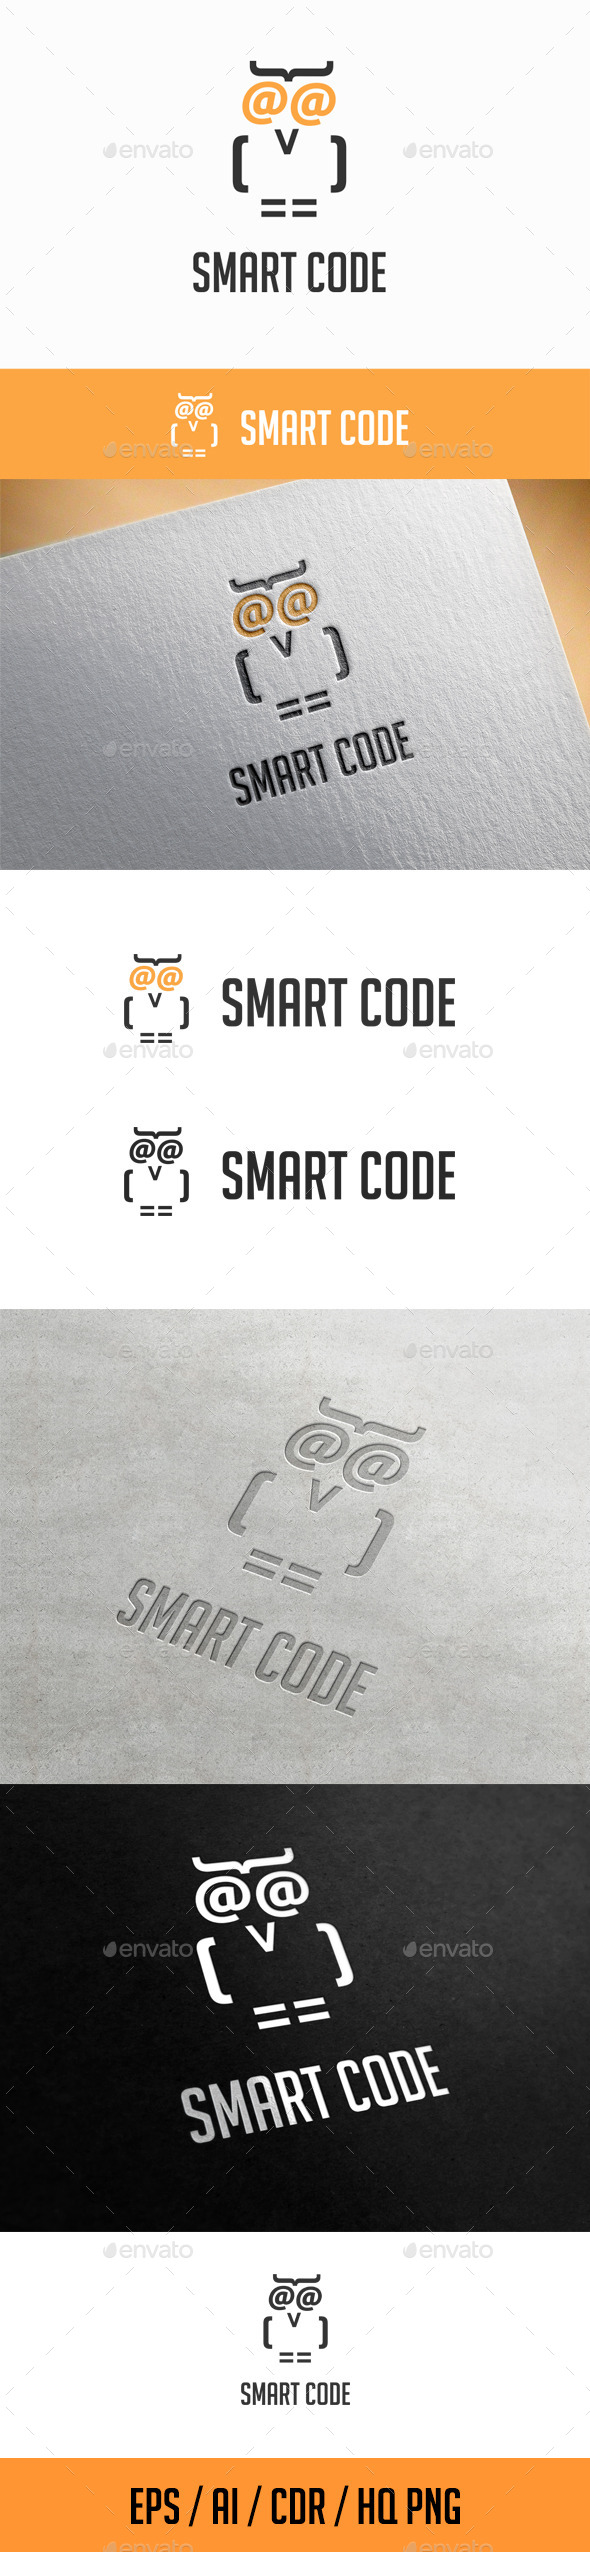 GraphicRiver Smart Code Logo Template 11569222